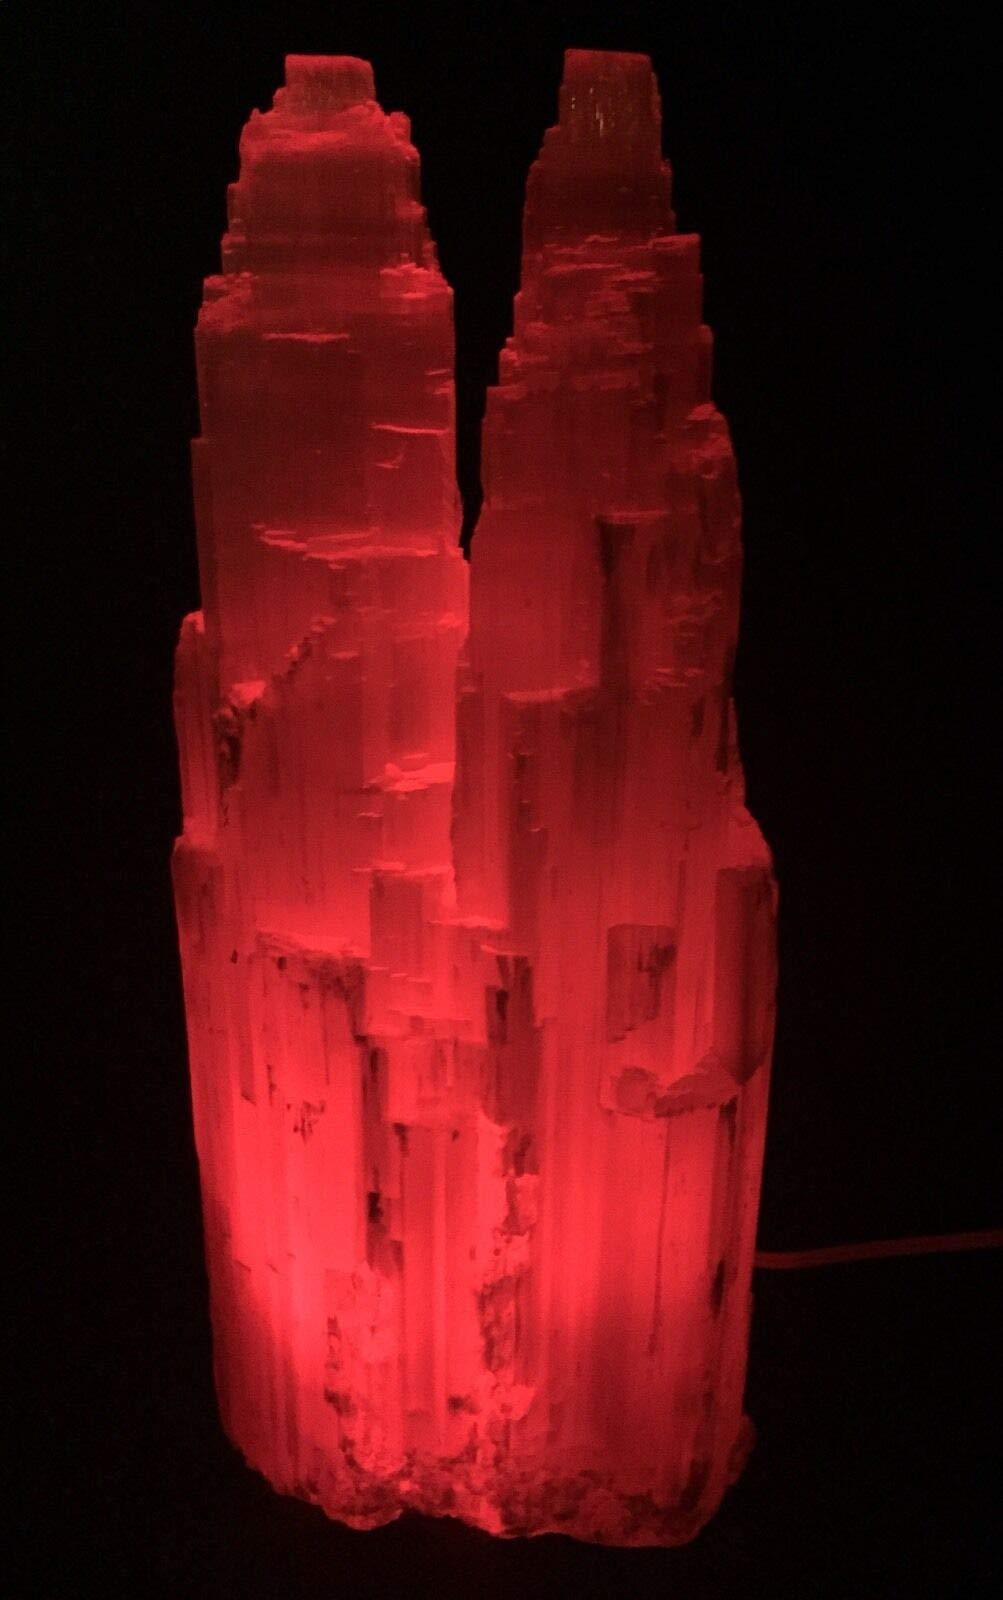 Large Selenite Lamp W/Cord Red LED Bulb Selenite Crystal Tower Two Point Double.Natural Crystals & Rocks for Cabbing, Cutting, Lapidary, Tumbling, Polishing, Wire Wrapping, Wicca